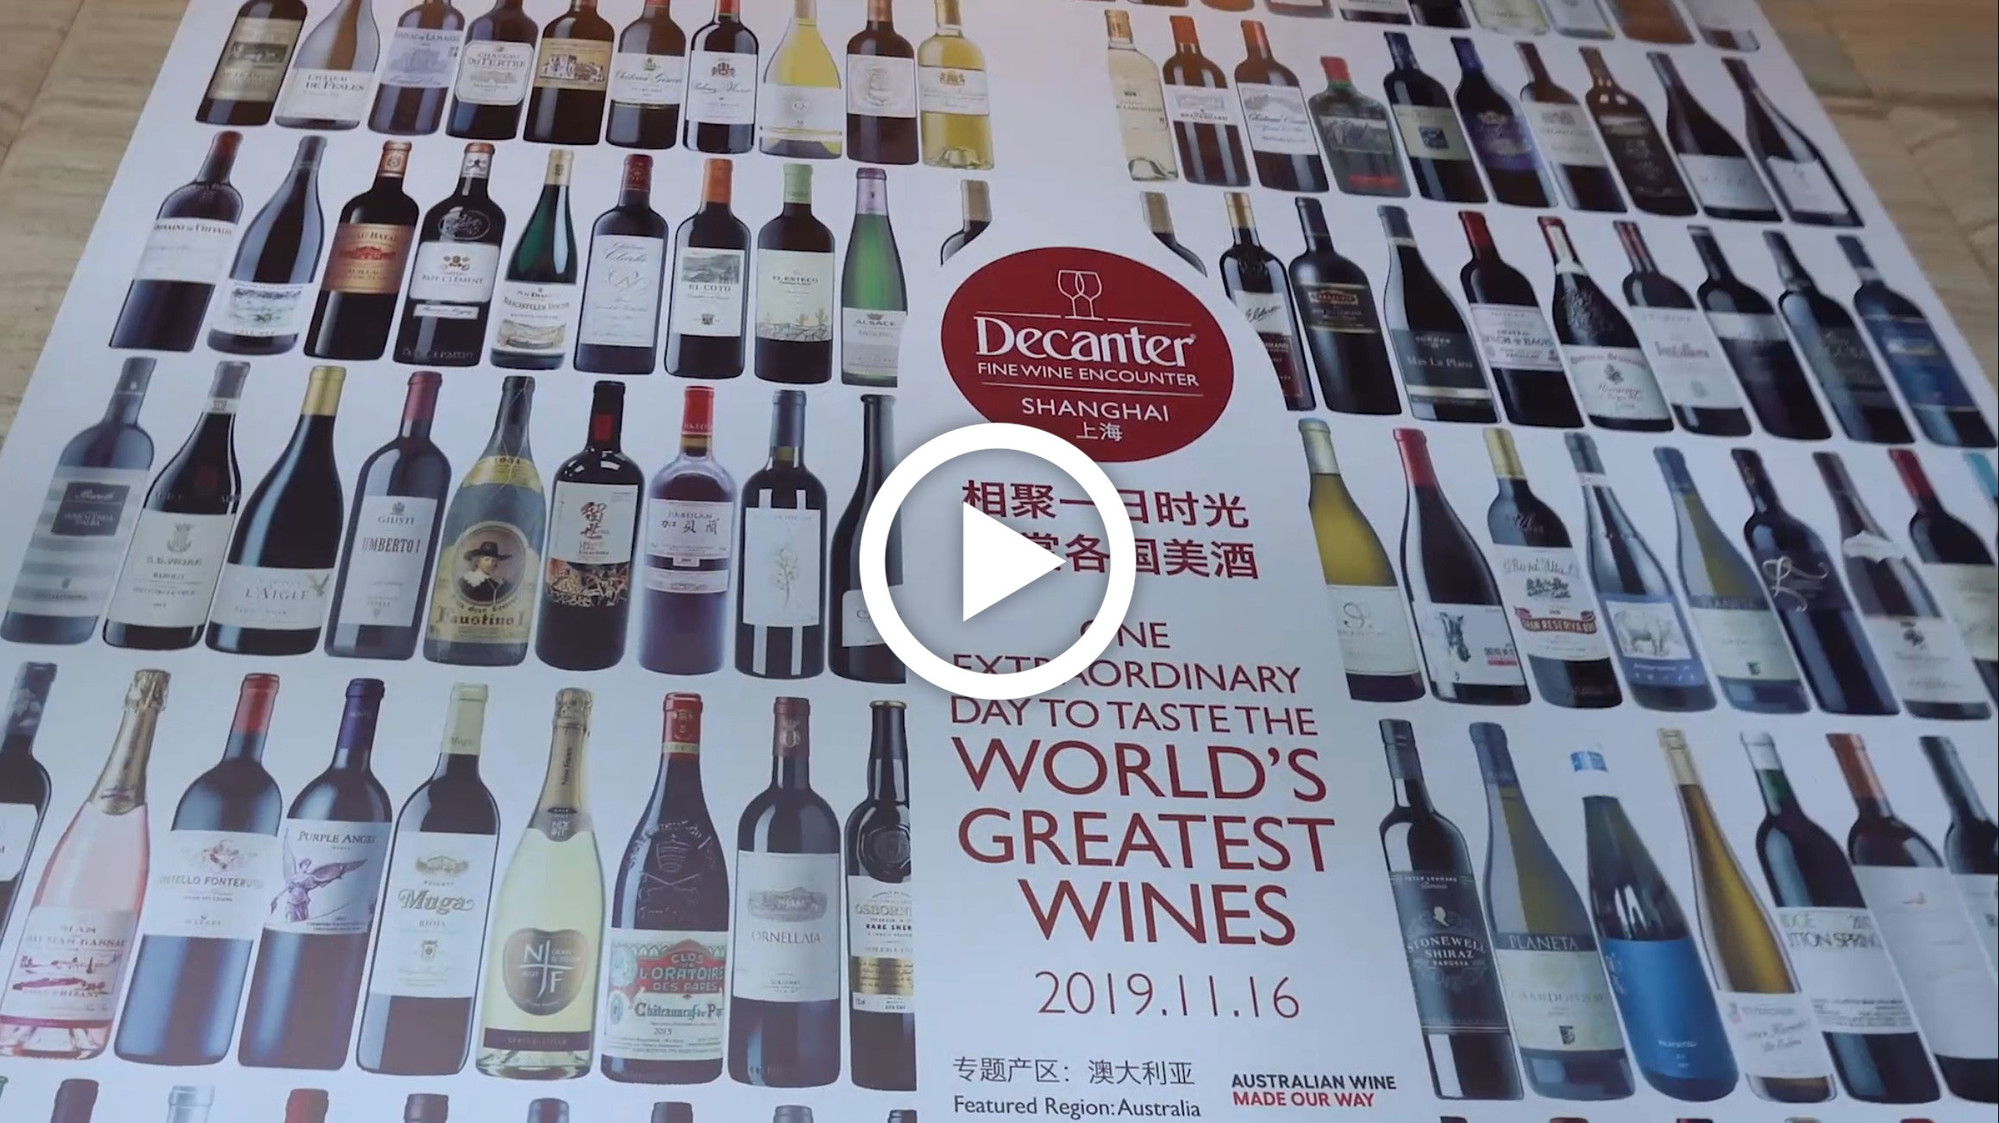 Highlight video of the Decanter Shanghai Fine Wine Encounter 2019